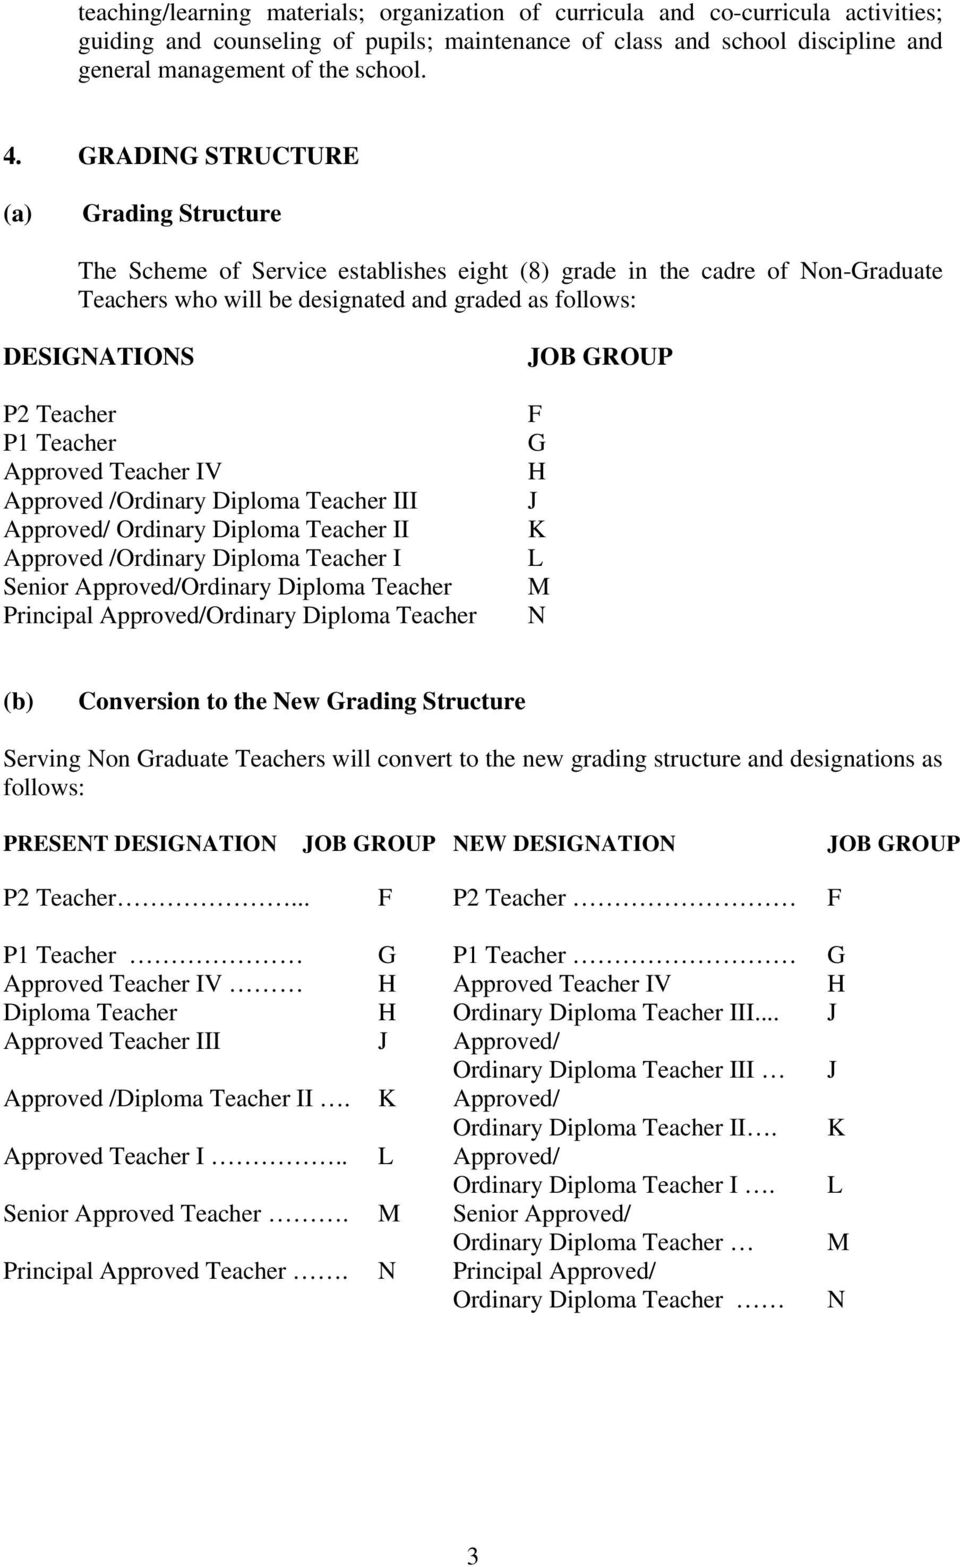 Teacher Approved Teacher IV Approved /Ordinary Diploma Teacher III Approved/ Ordinary Diploma Teacher II Approved /Ordinary Diploma Teacher I Senior Approved/Ordinary Diploma Teacher Principal